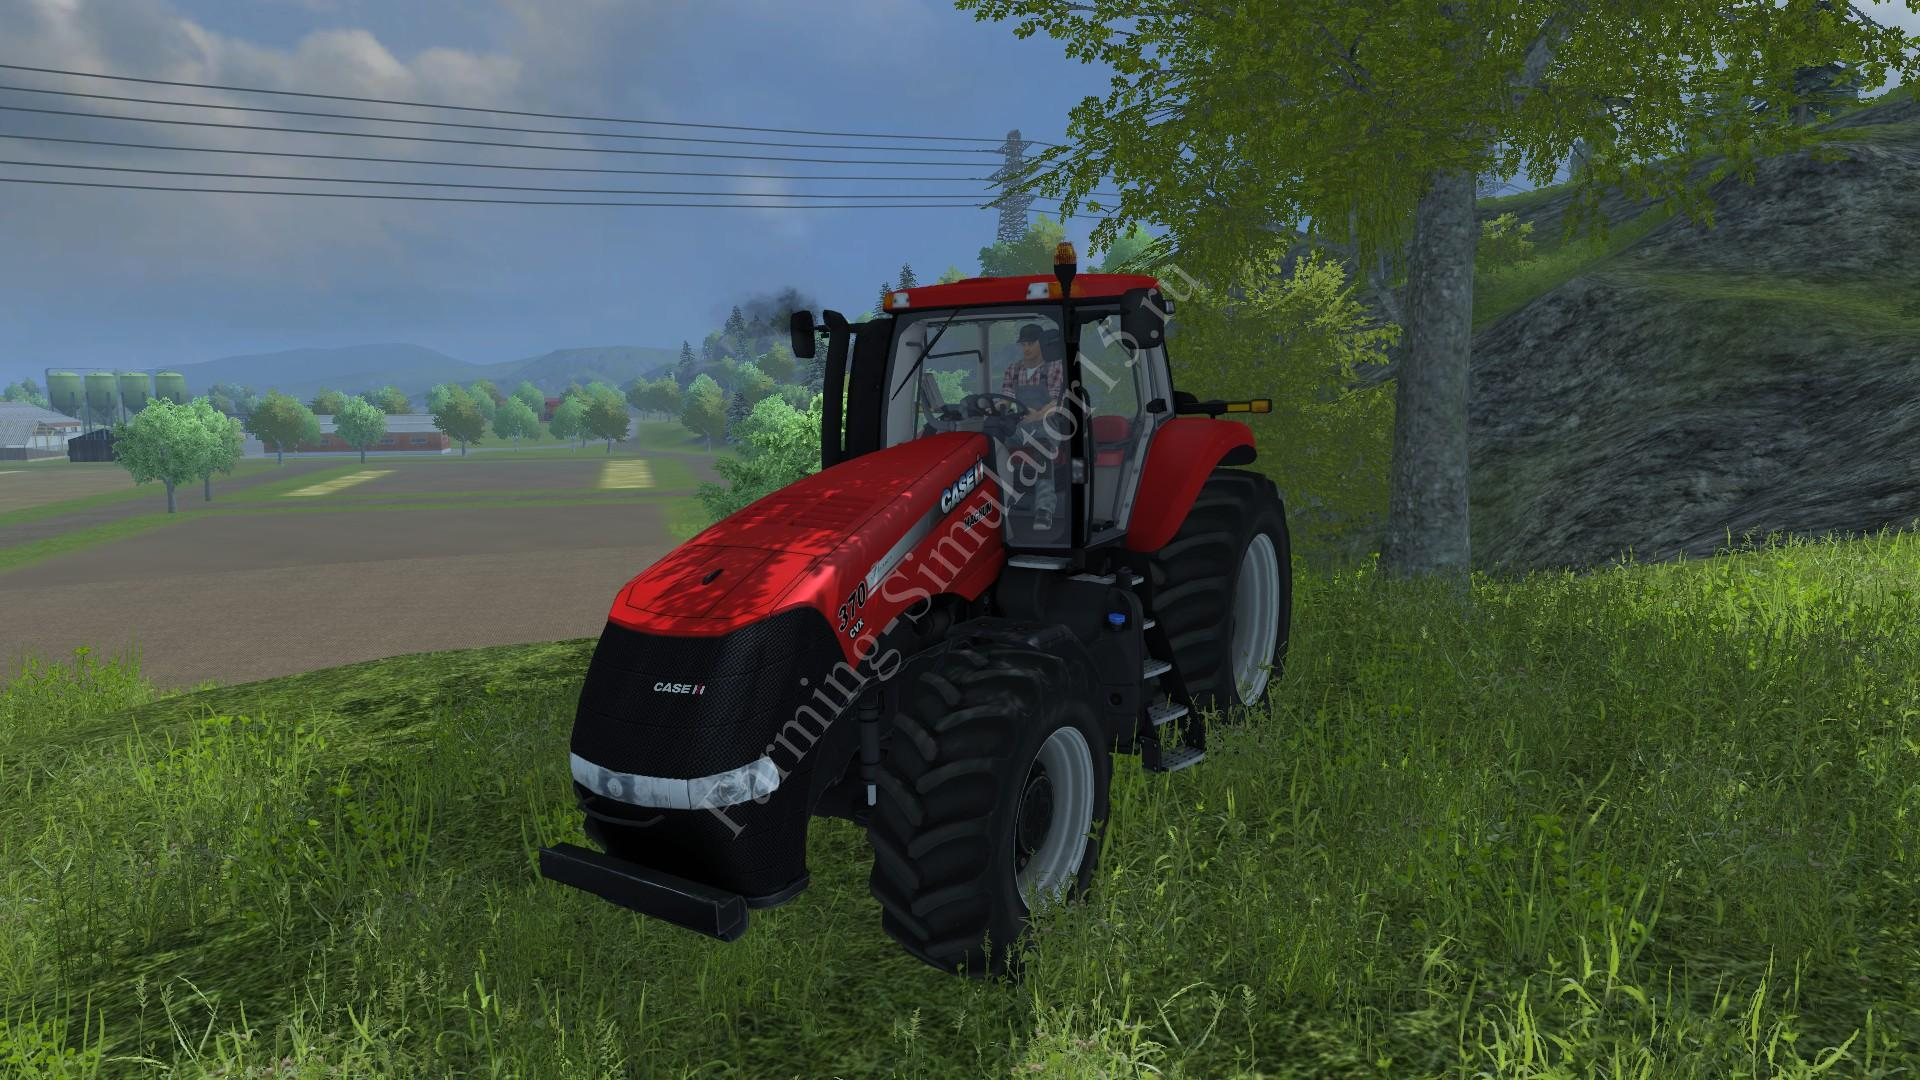 Мод трактора Case IH 370 v 1.0 Farming Simulator 2013, Farming Simulator 13